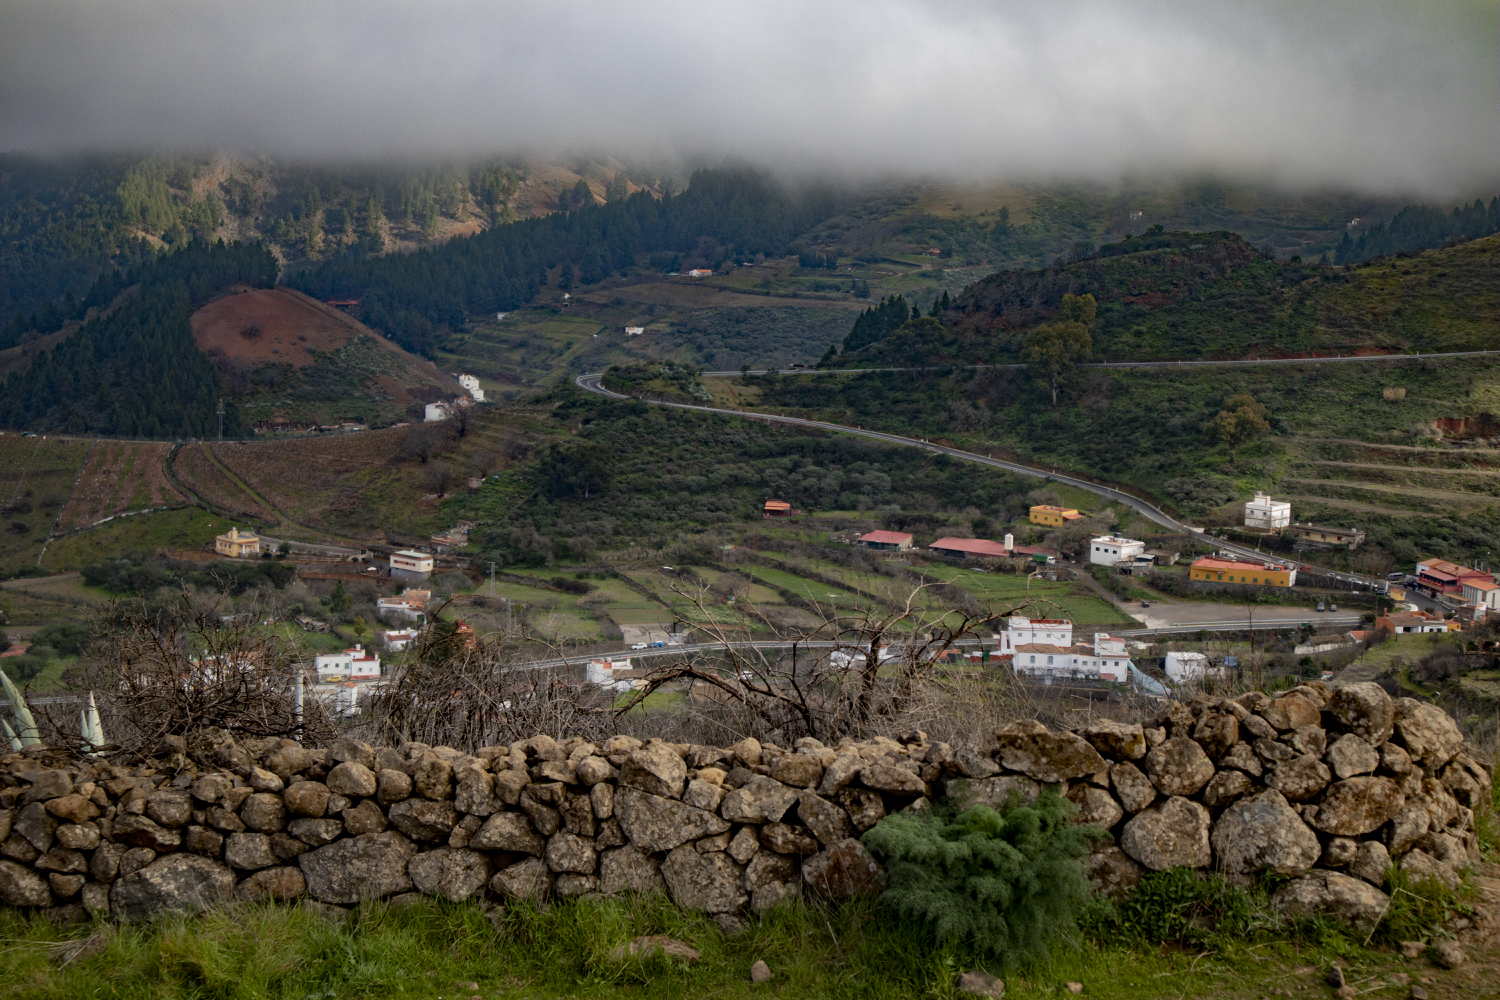 View of the hamlet of Cueva Grande from the viewing plateau behind the stone wall